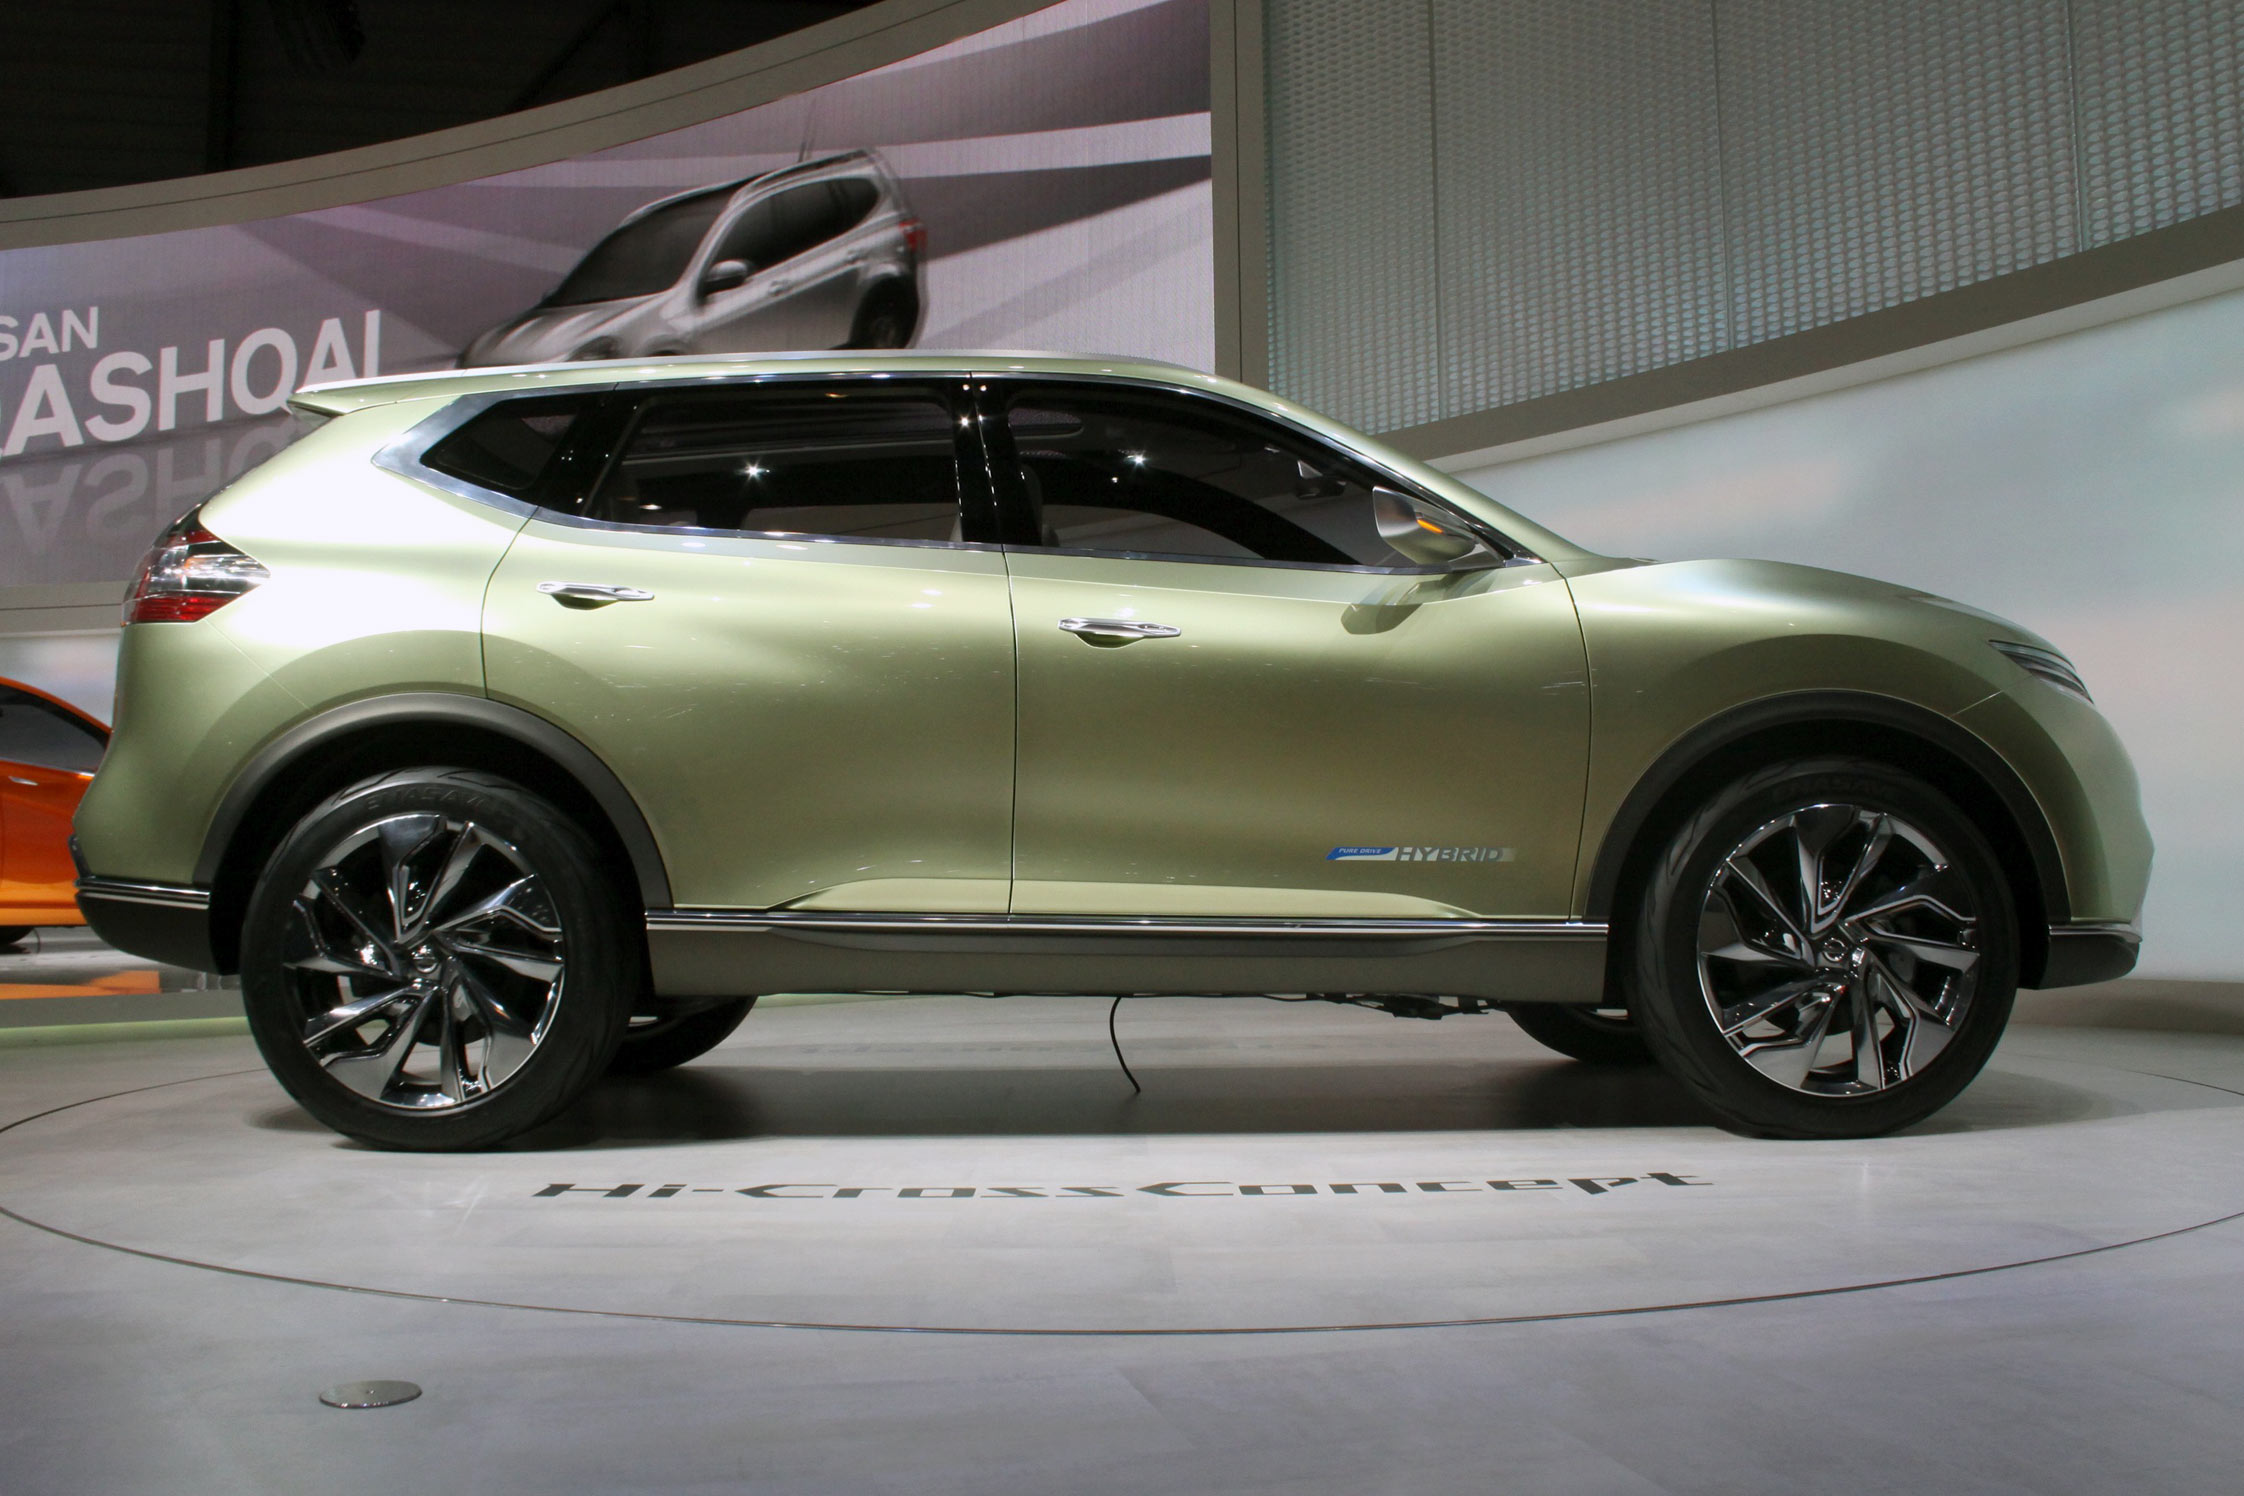 Photo nissan hi cross concept salon de gen ve 2012 m diatheque - Concept salon de the ...